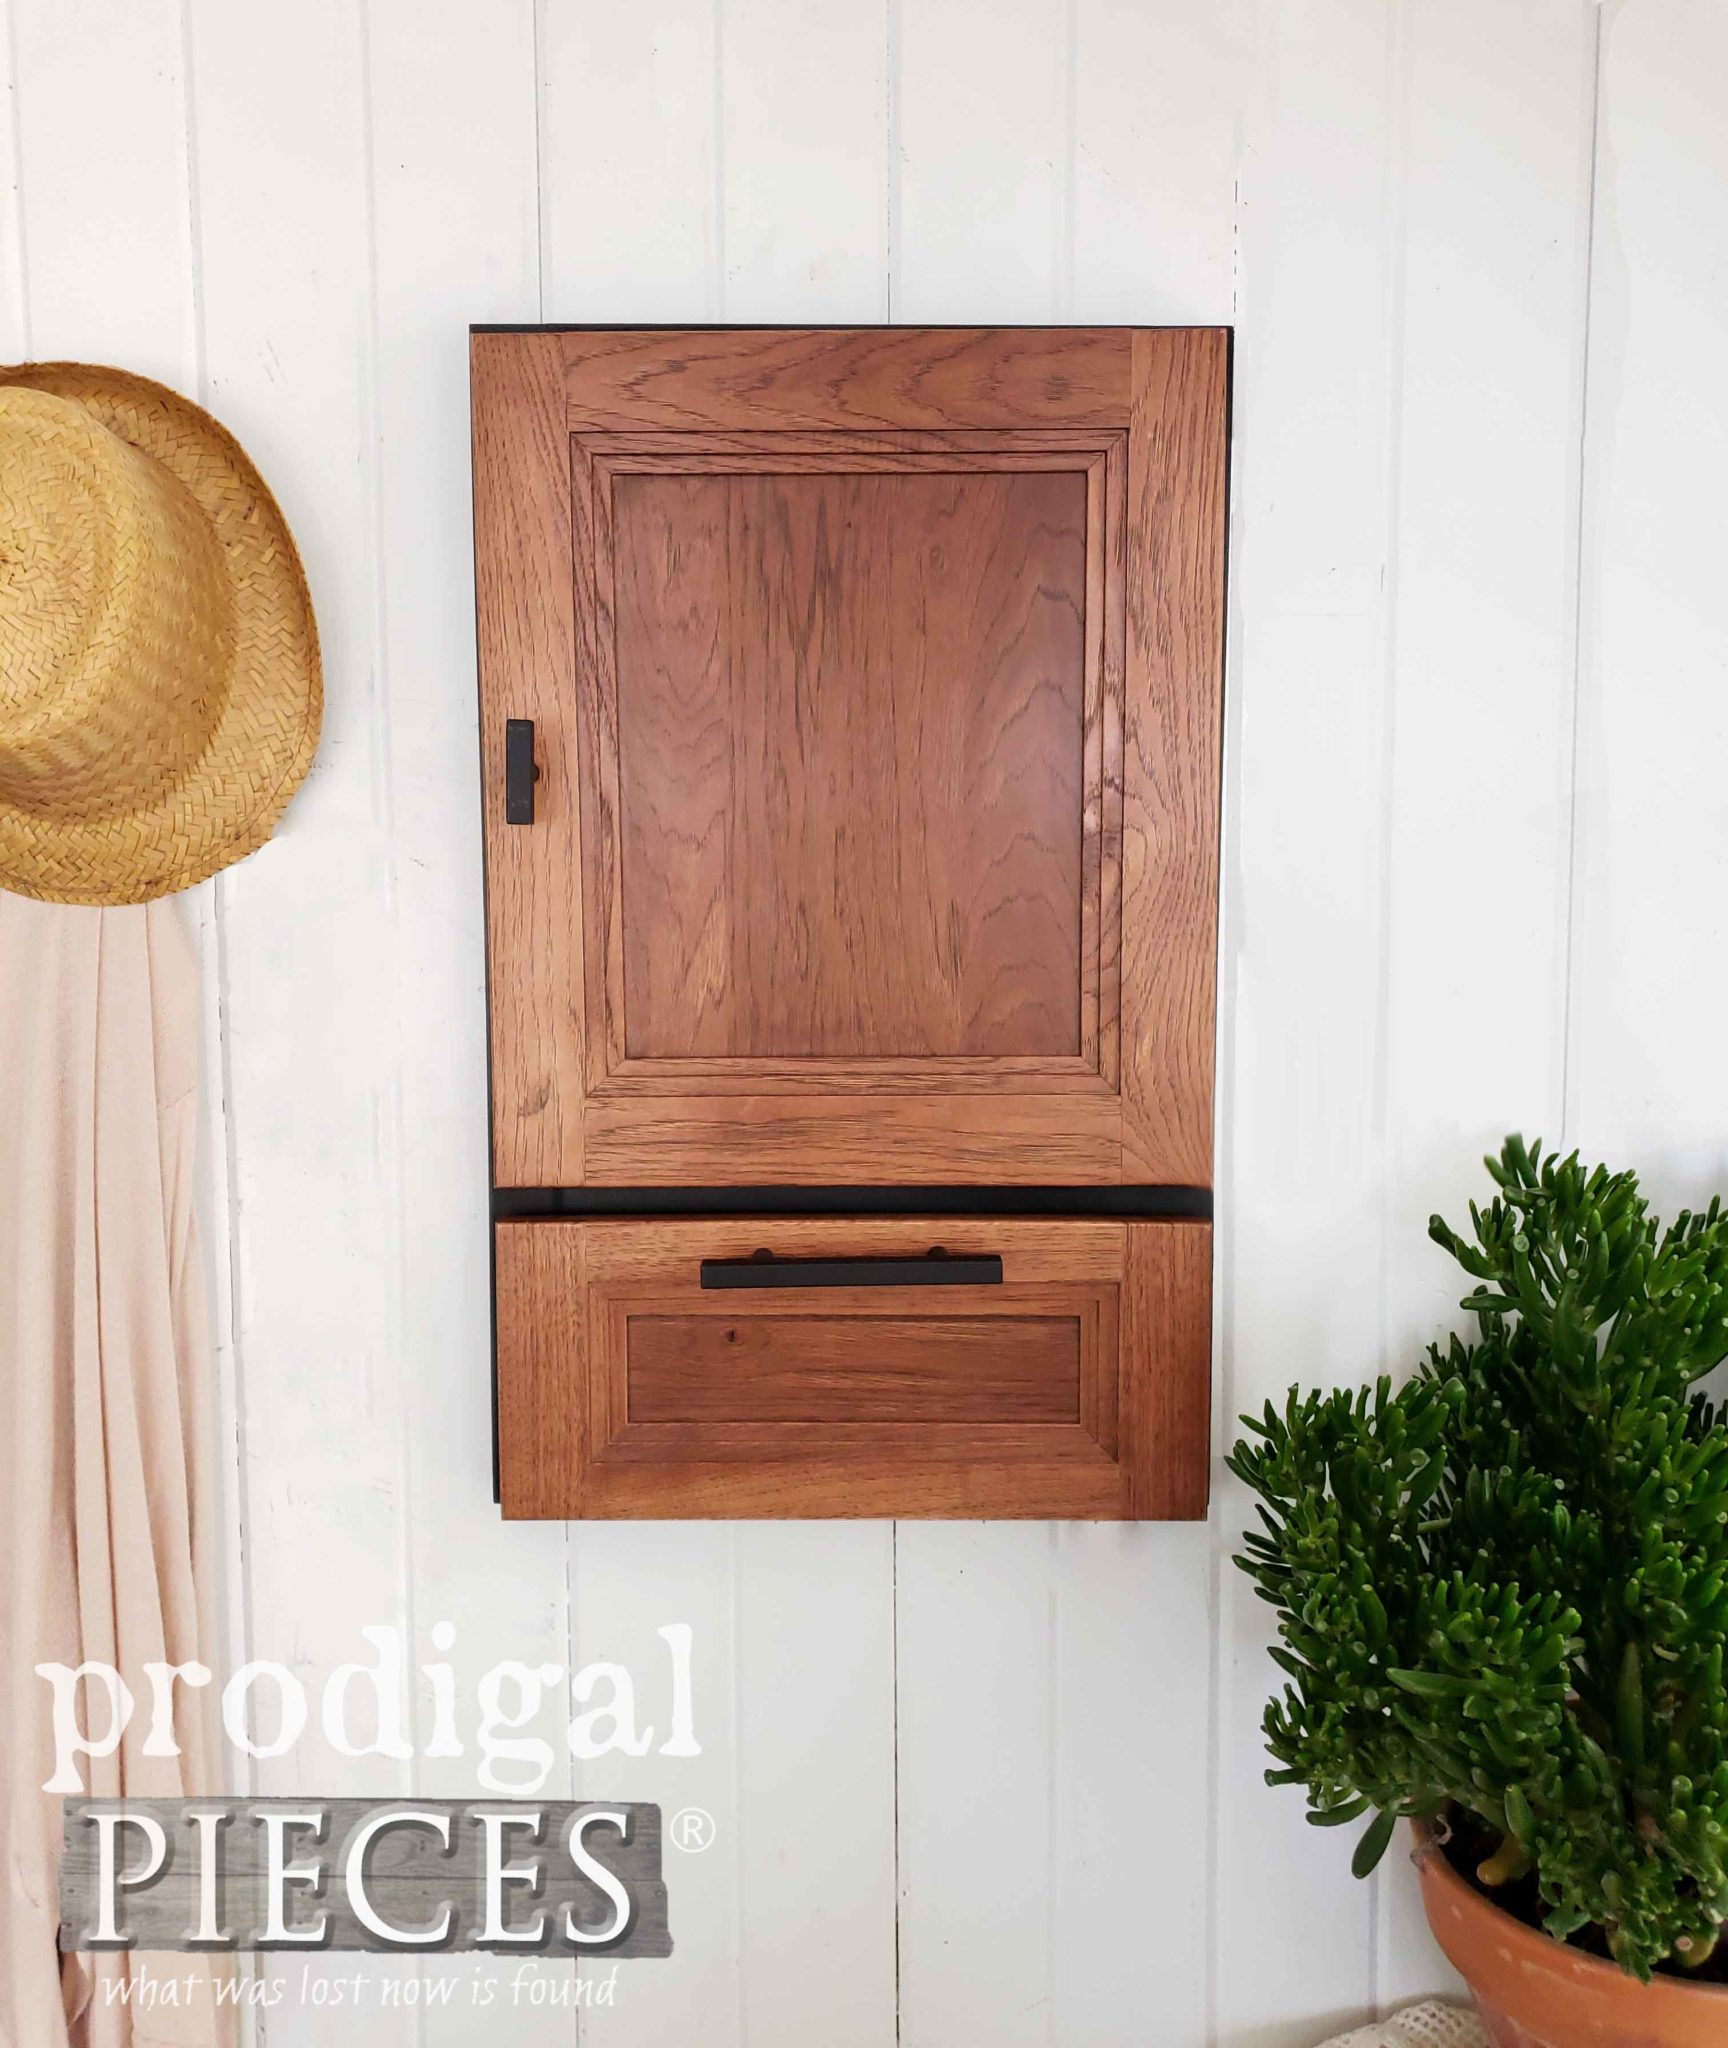 Handmade Modern Farmhouse Jewelry Cabinet from Repurposed Cupboard Door Sample by Larissa of Prodigal Pieces | prodigalpieces.com